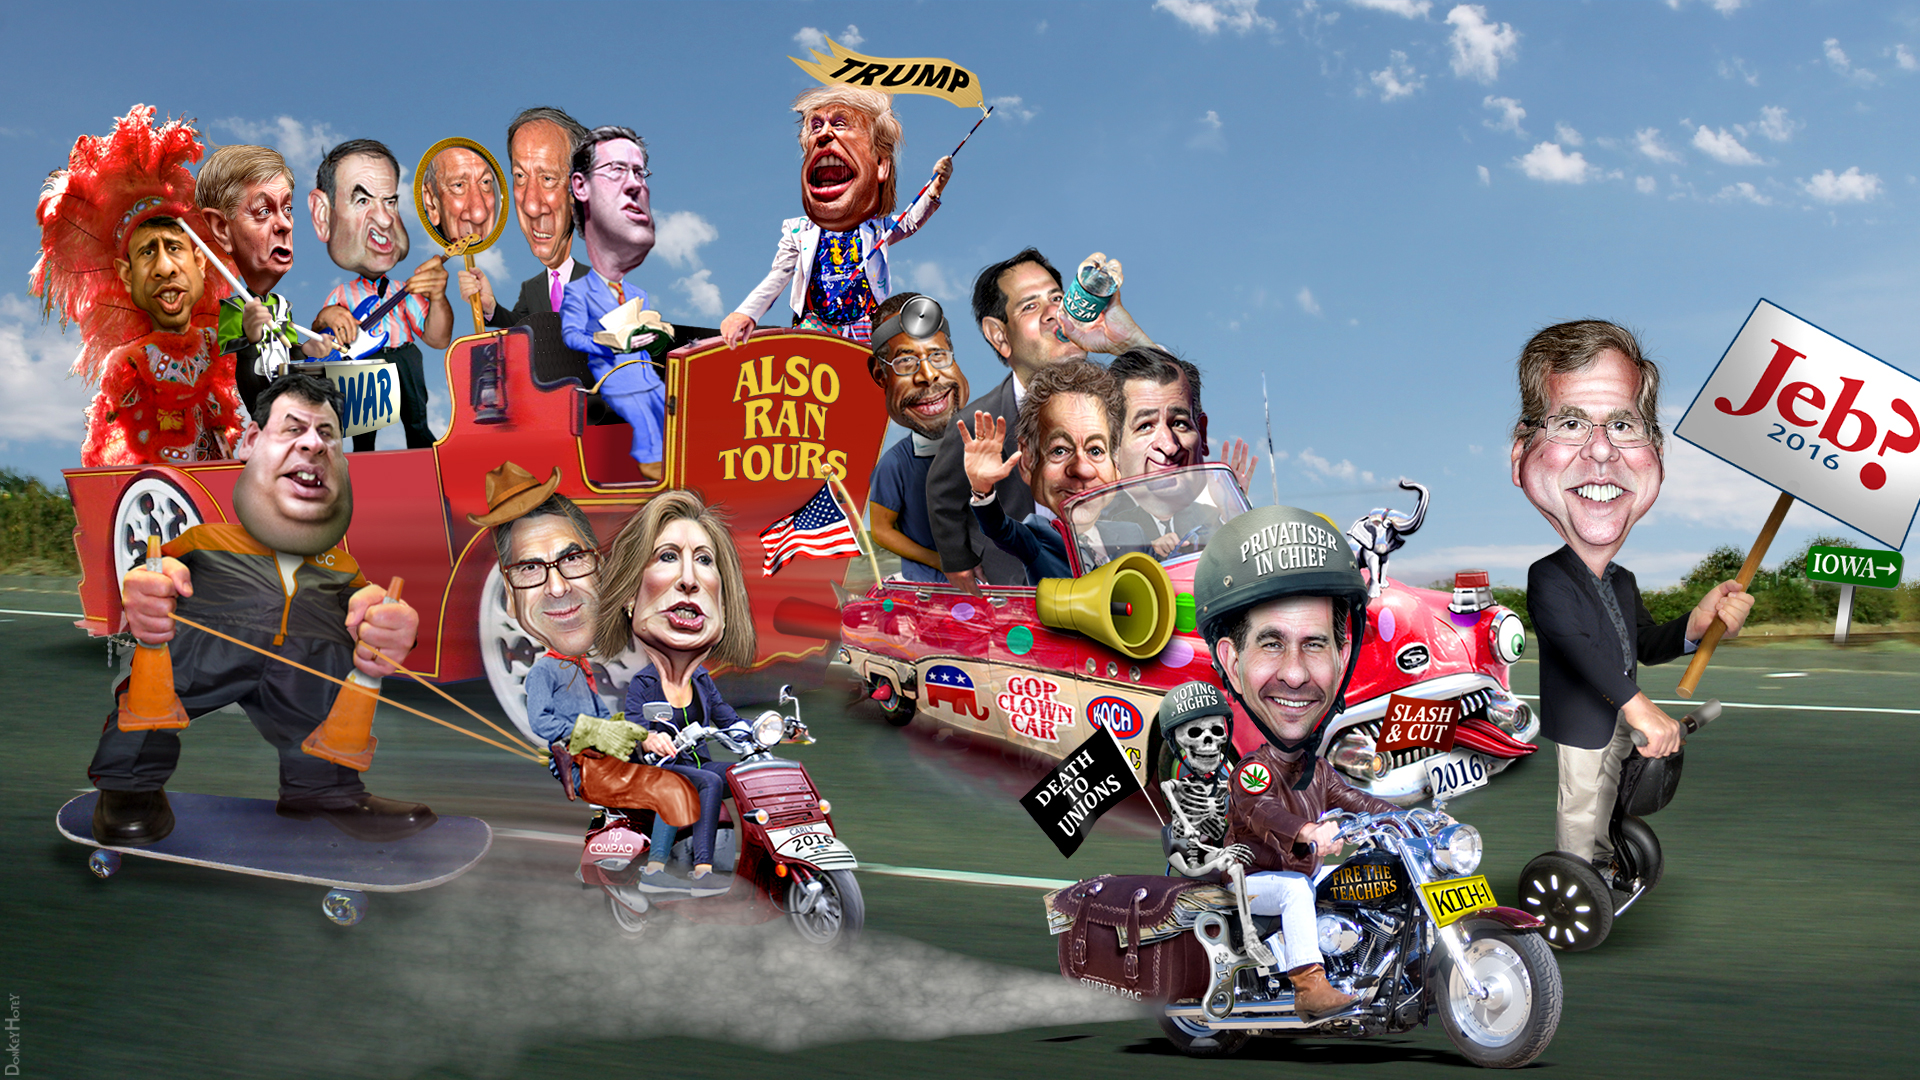 Republican Clown Car